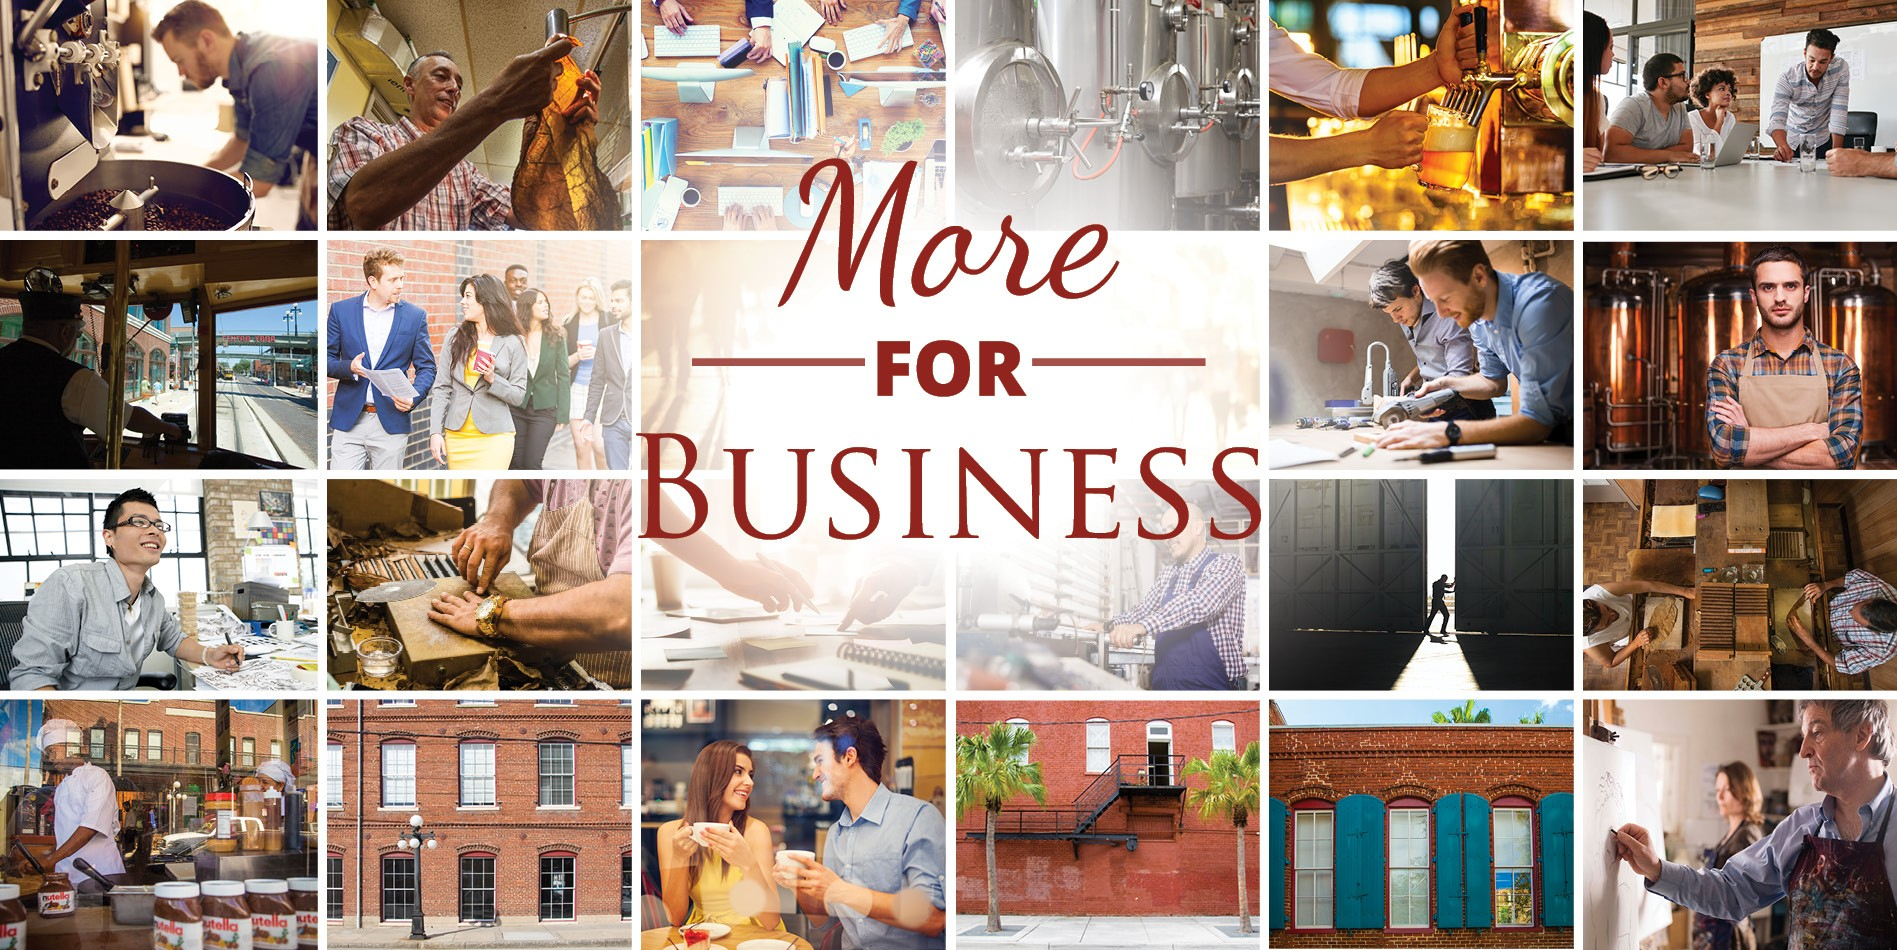 Collage of photos showing the businesses and workers of Ybor.